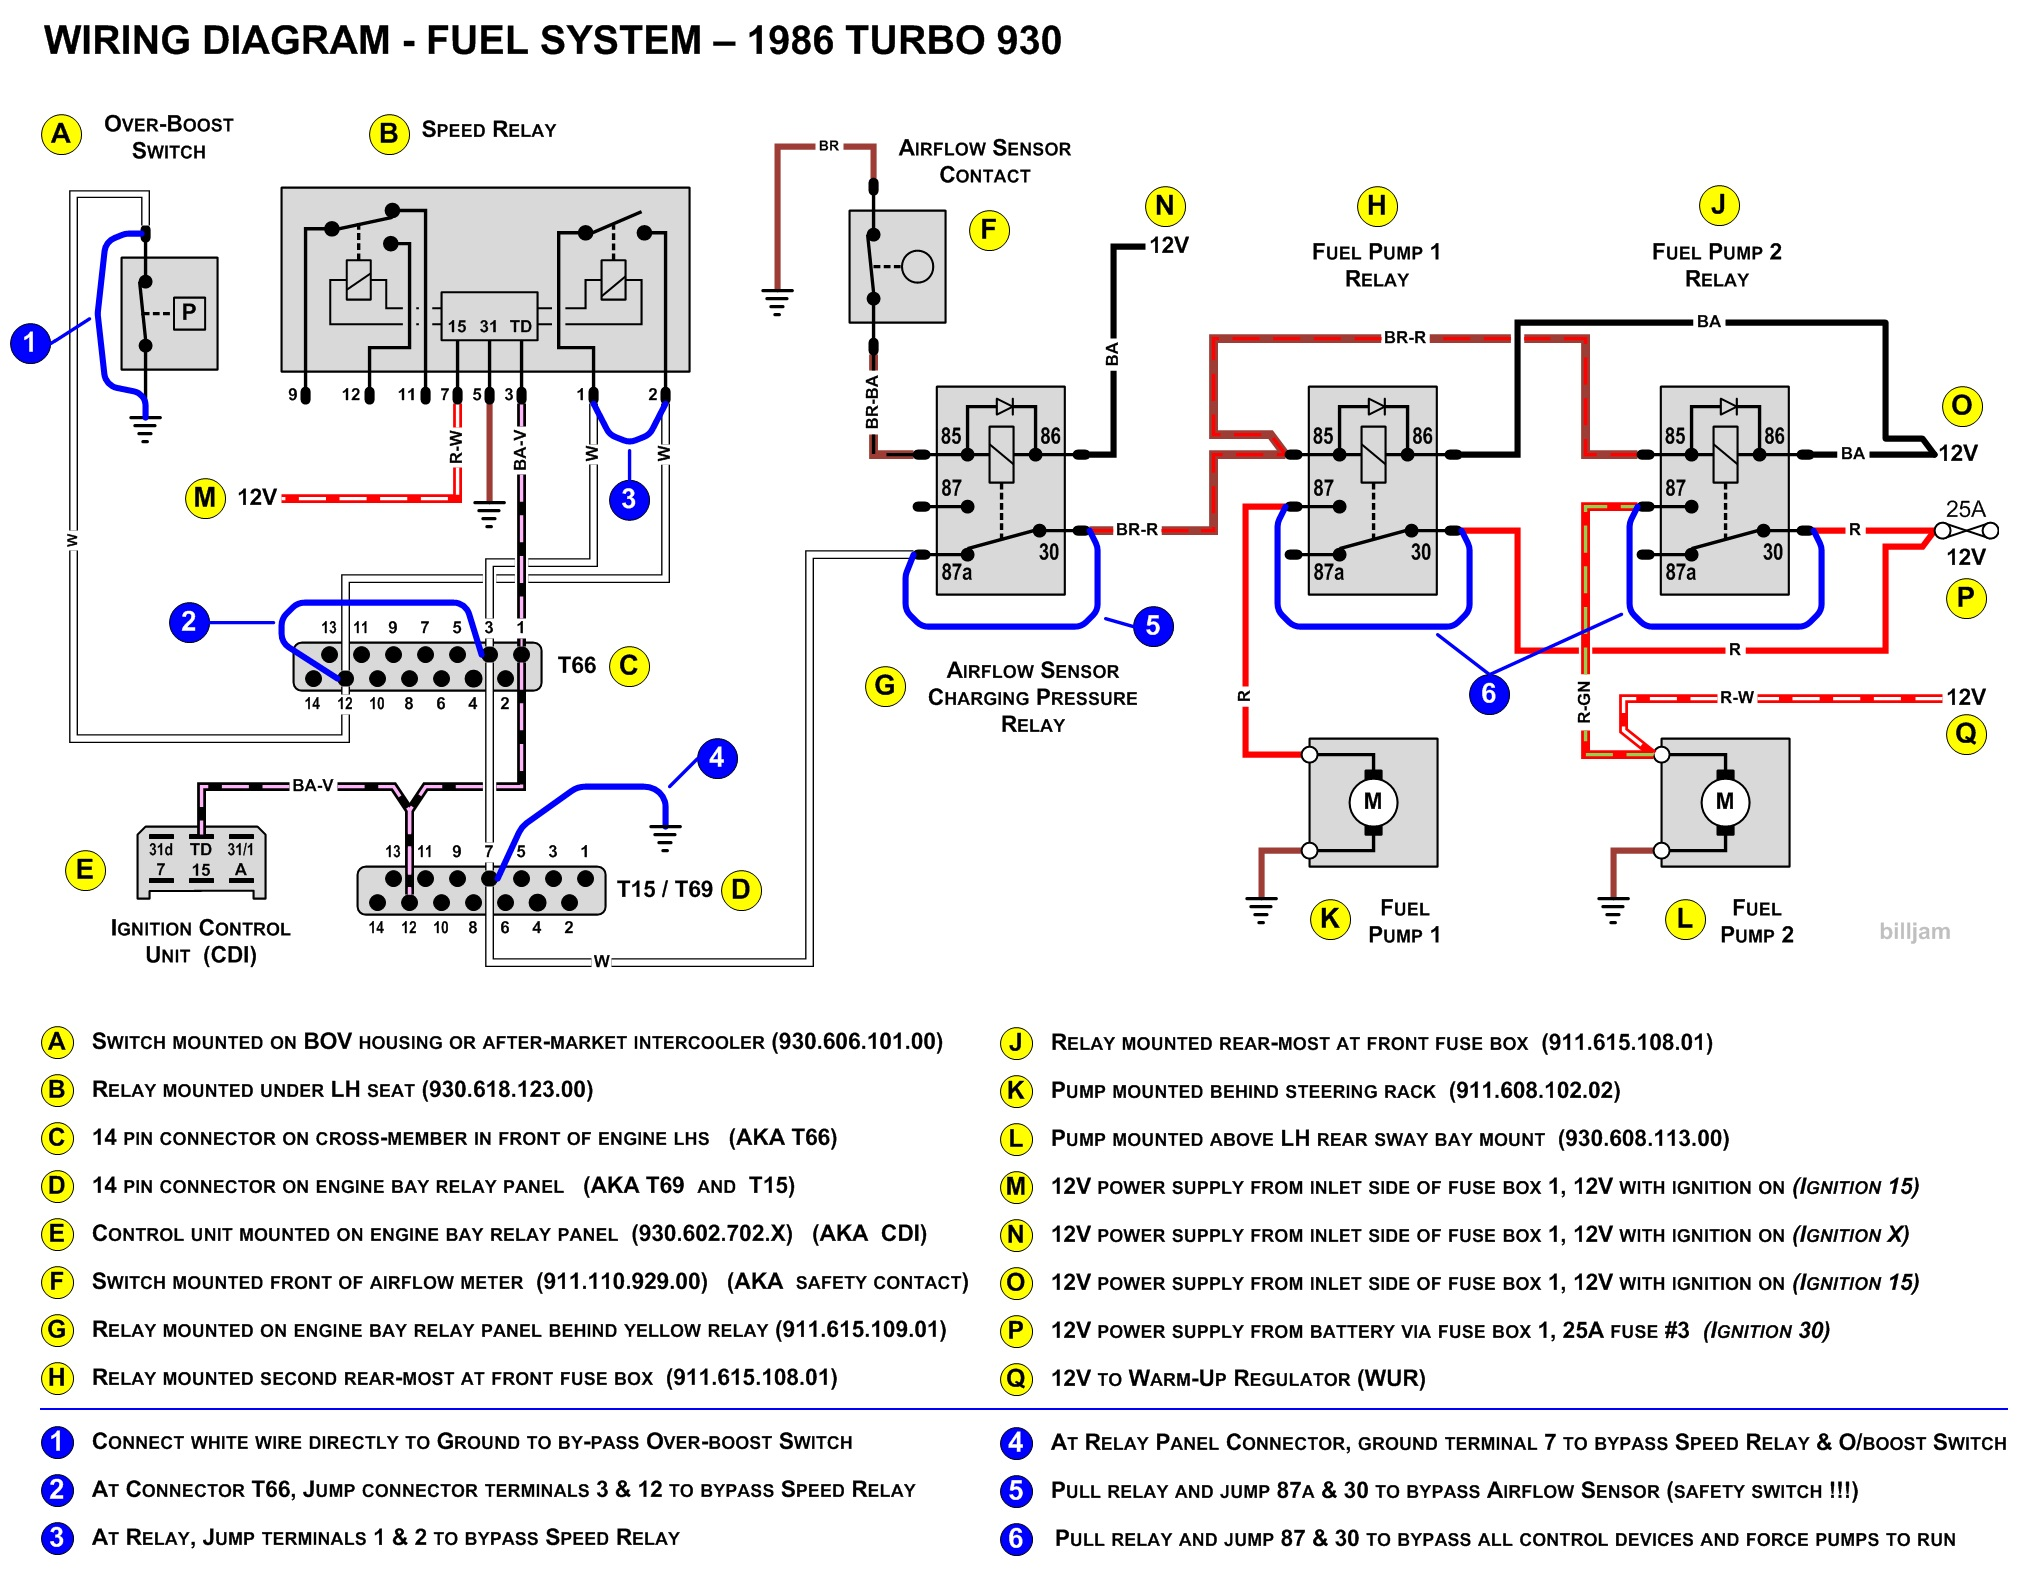 86 porsche 930 fuel system wiring diagram jumpers made a fuse box label for my 88 page 3 pelican parts technical bbs  at crackthecode.co